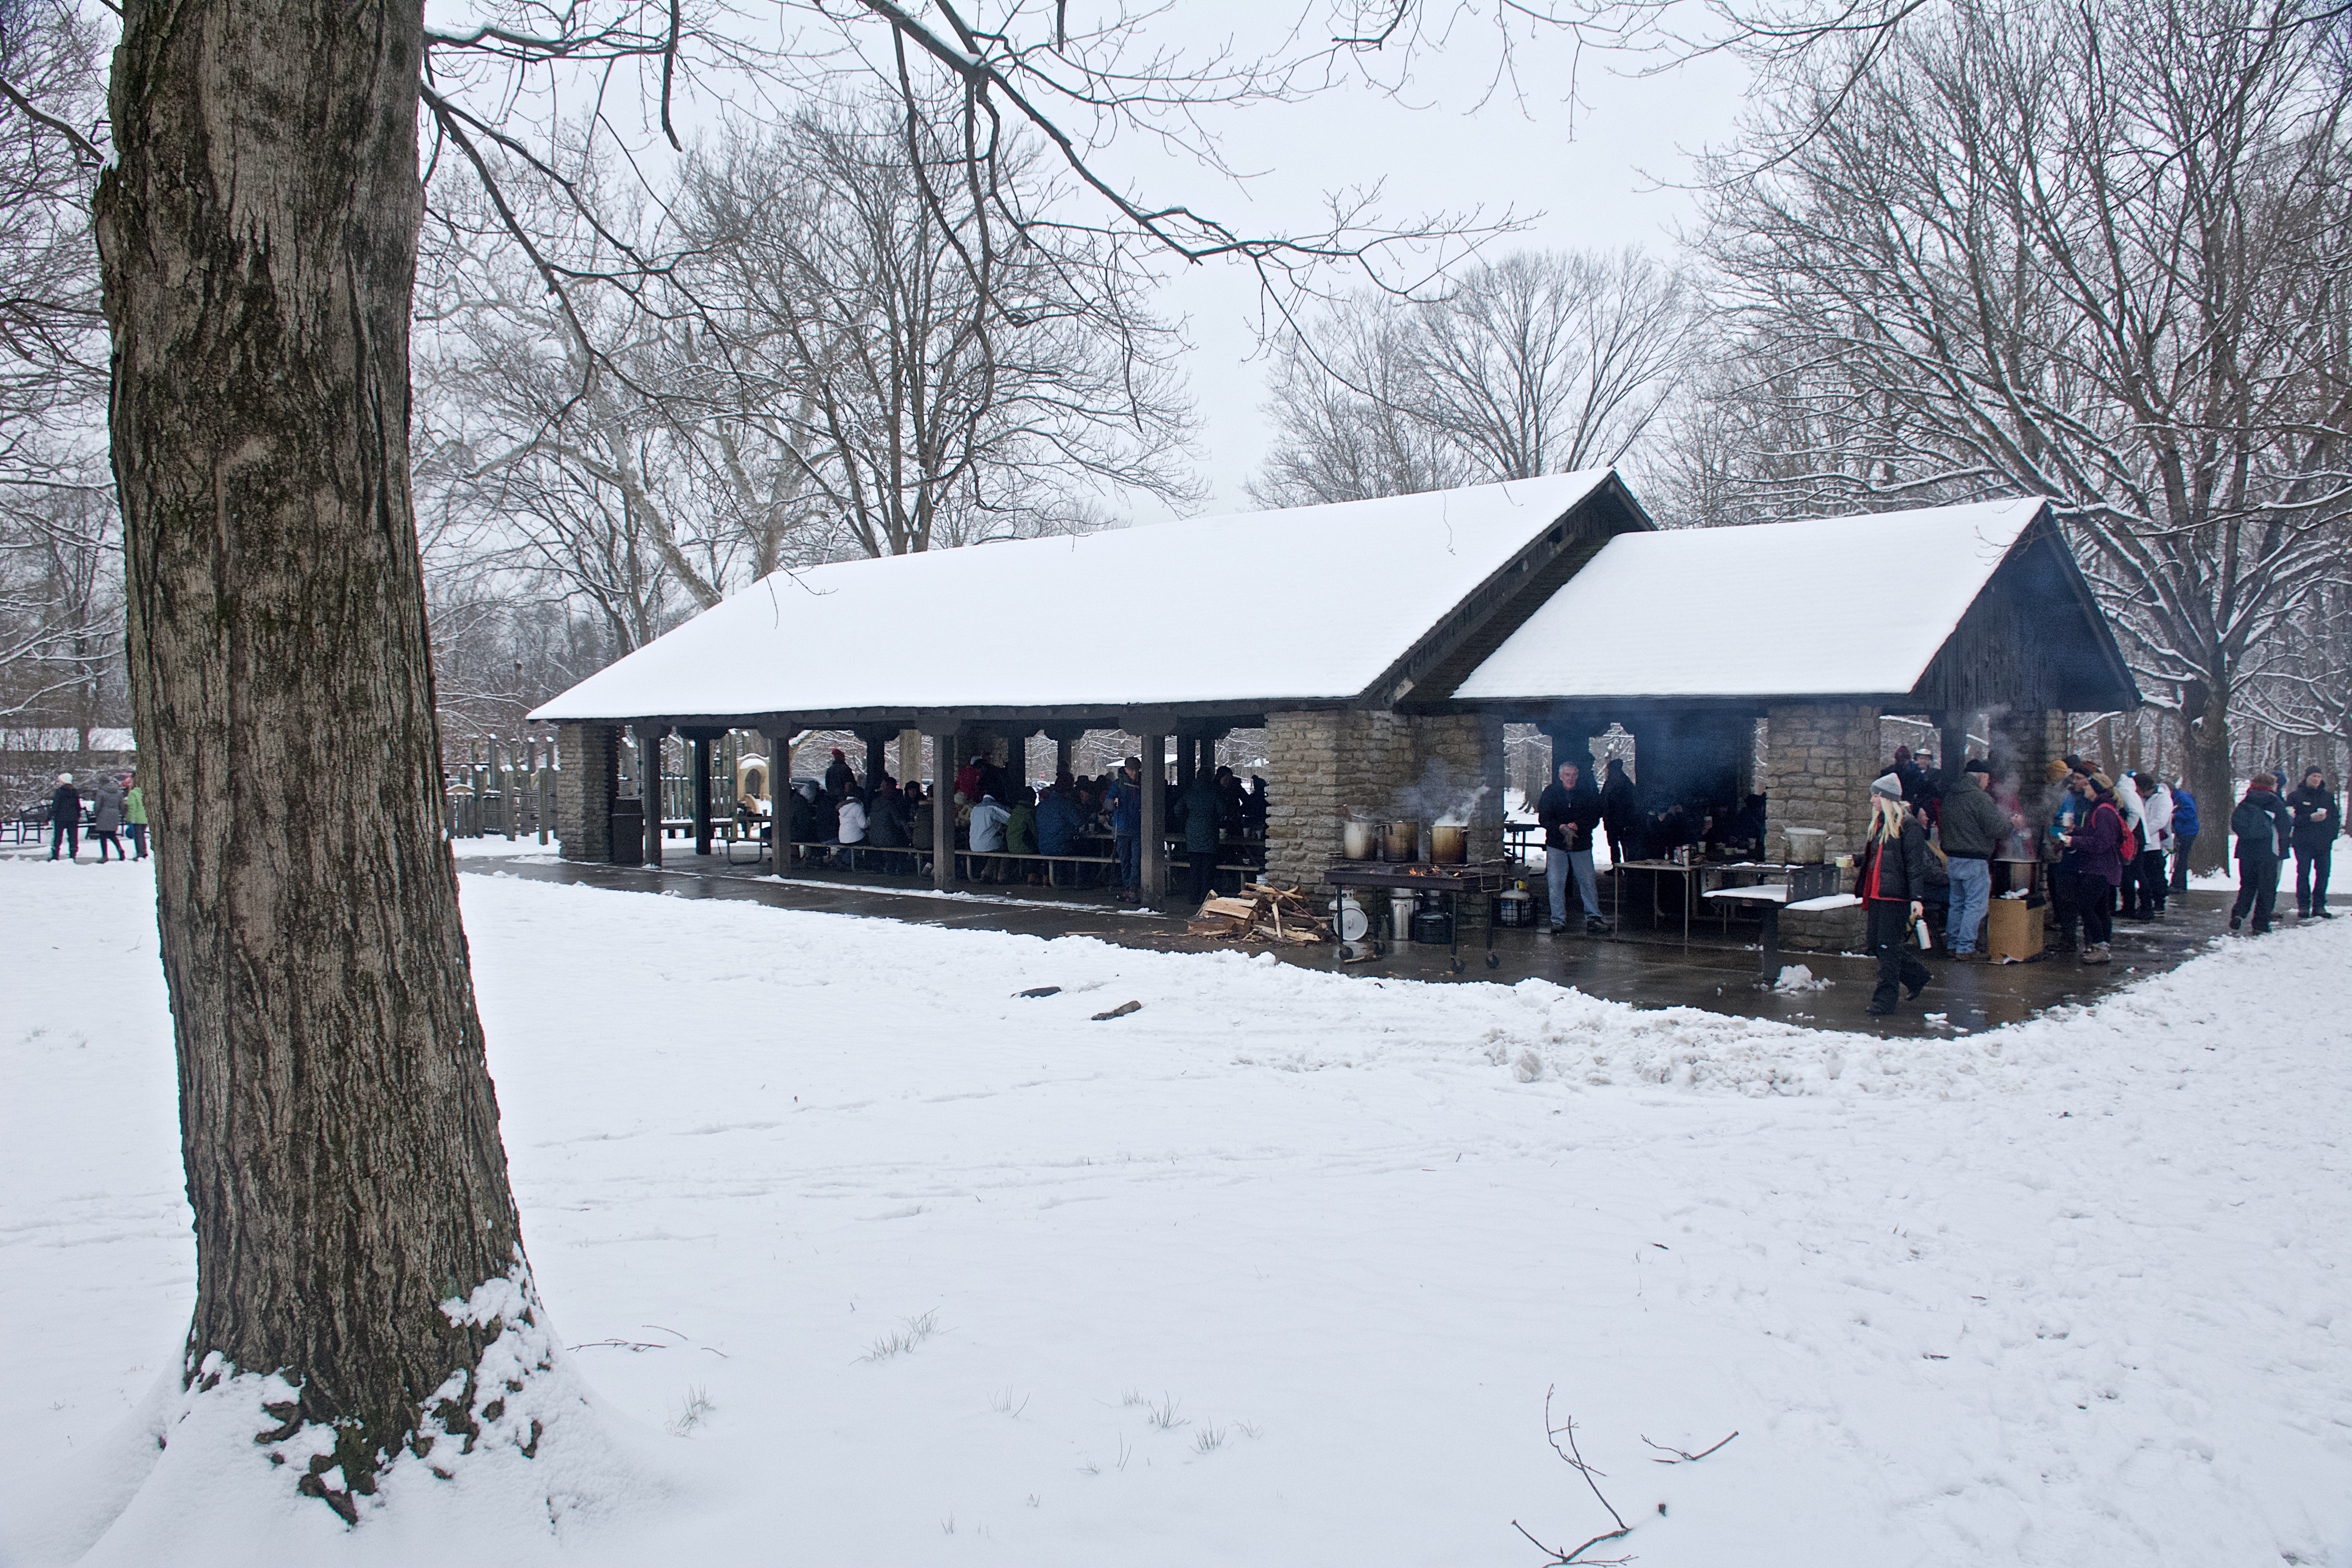 After a long hike, guests gather at Pavilion Grove Shelter in Sharon Woods for a hearty bowl of soup.